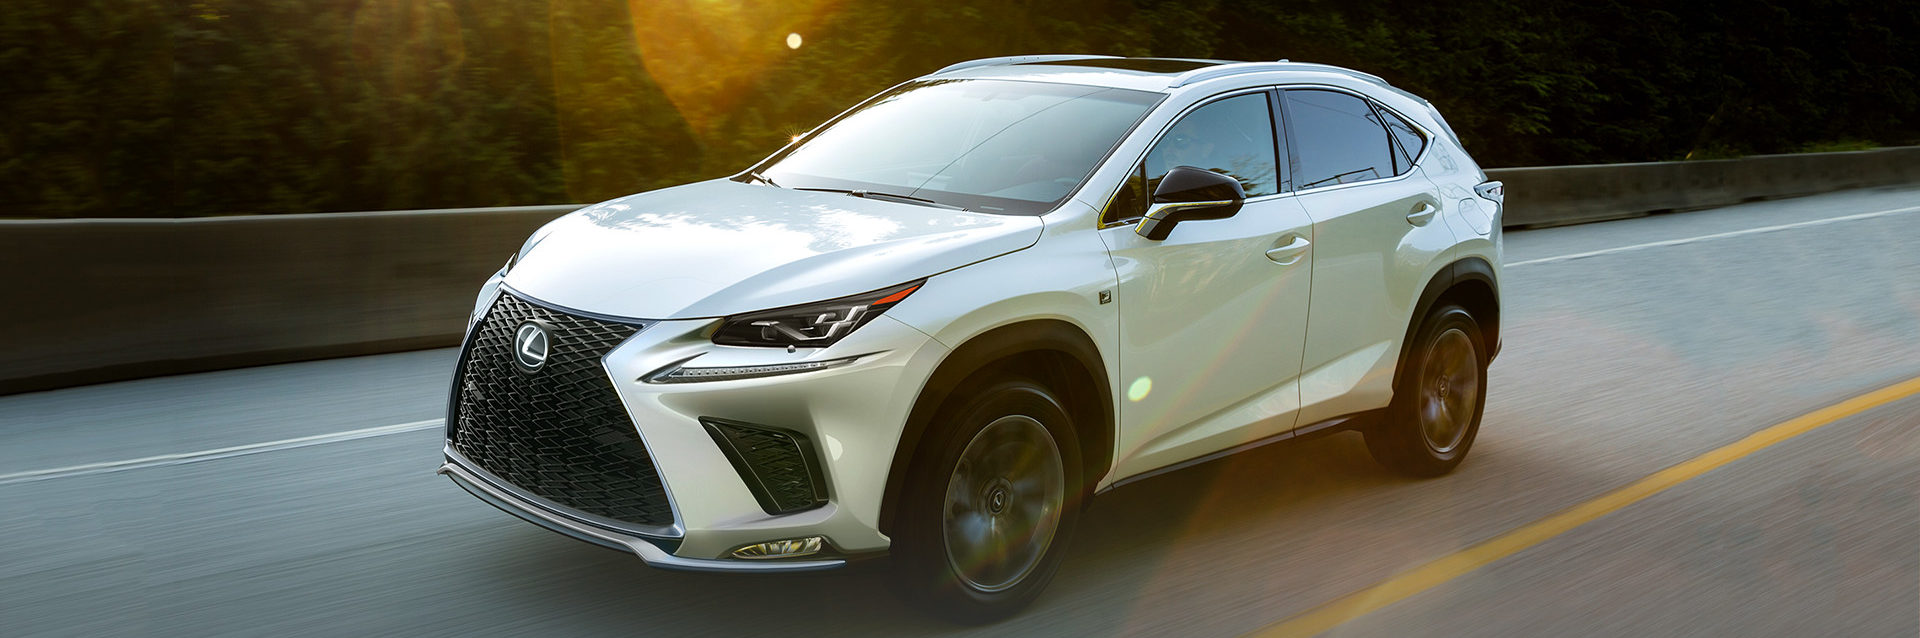 The New 2019 Lexus NX 300 Luxury SUV in Vancouver, BC